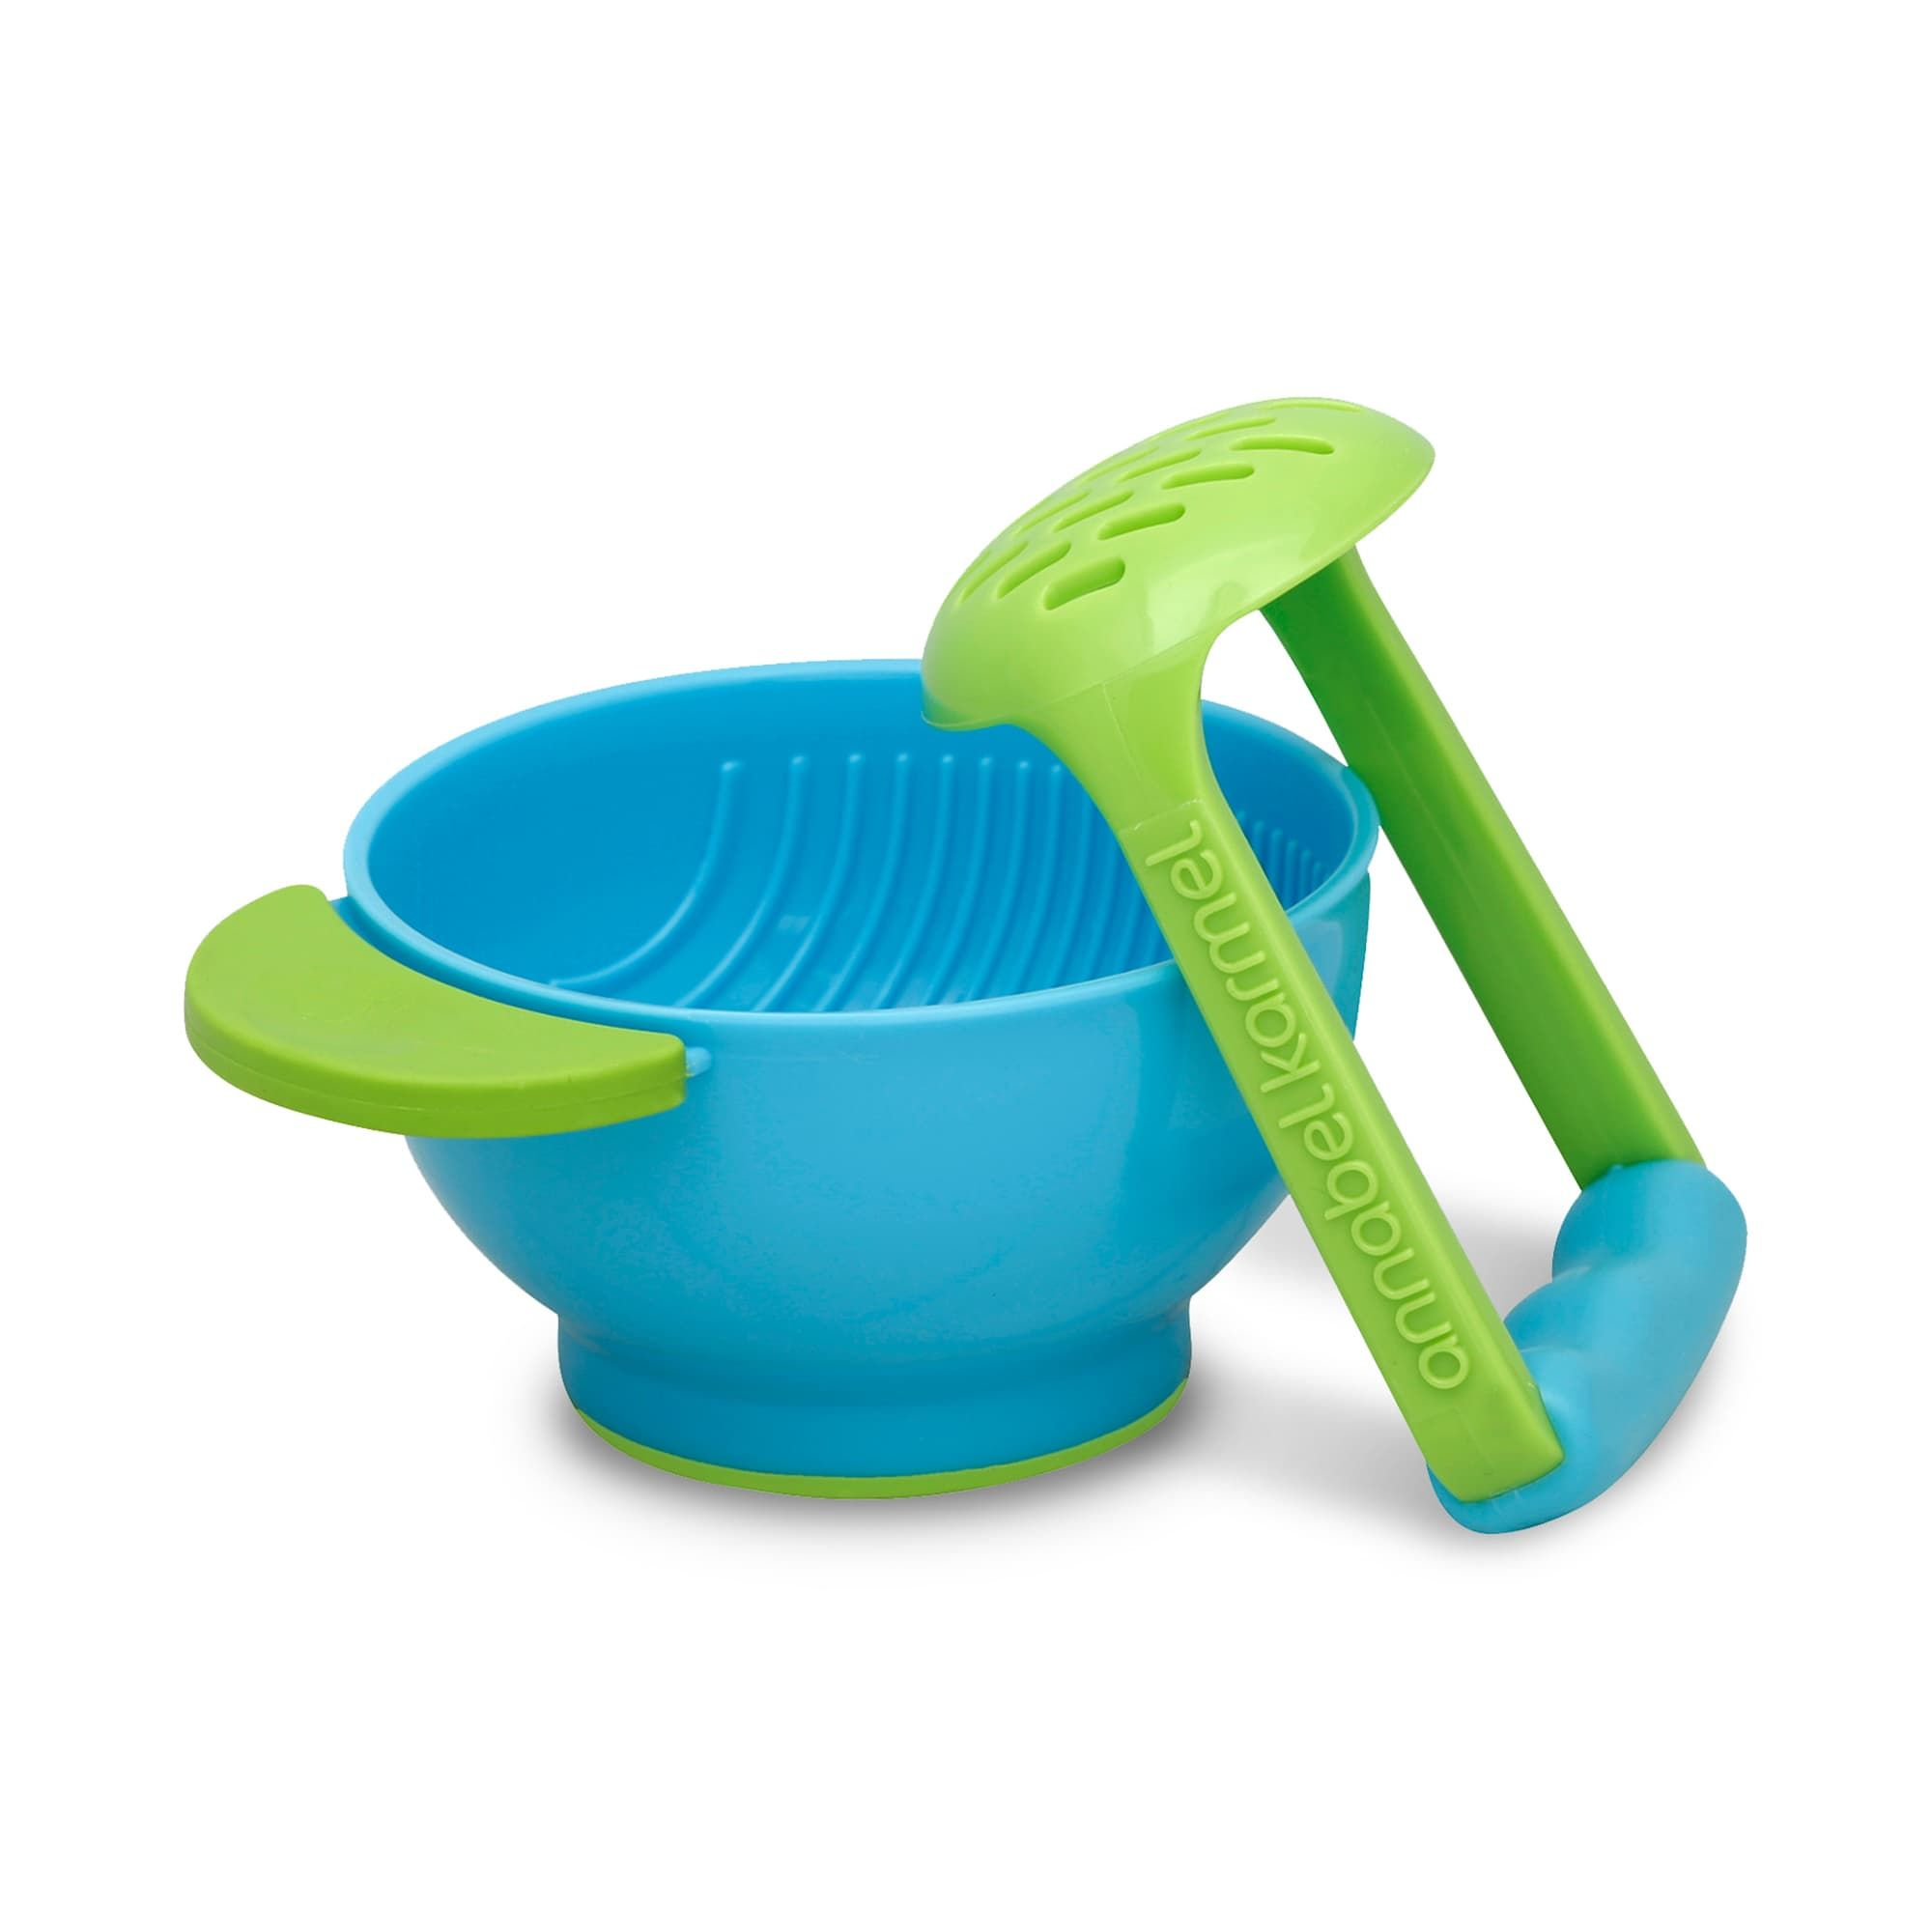 NUK Mash & Serve Baby Food Masher